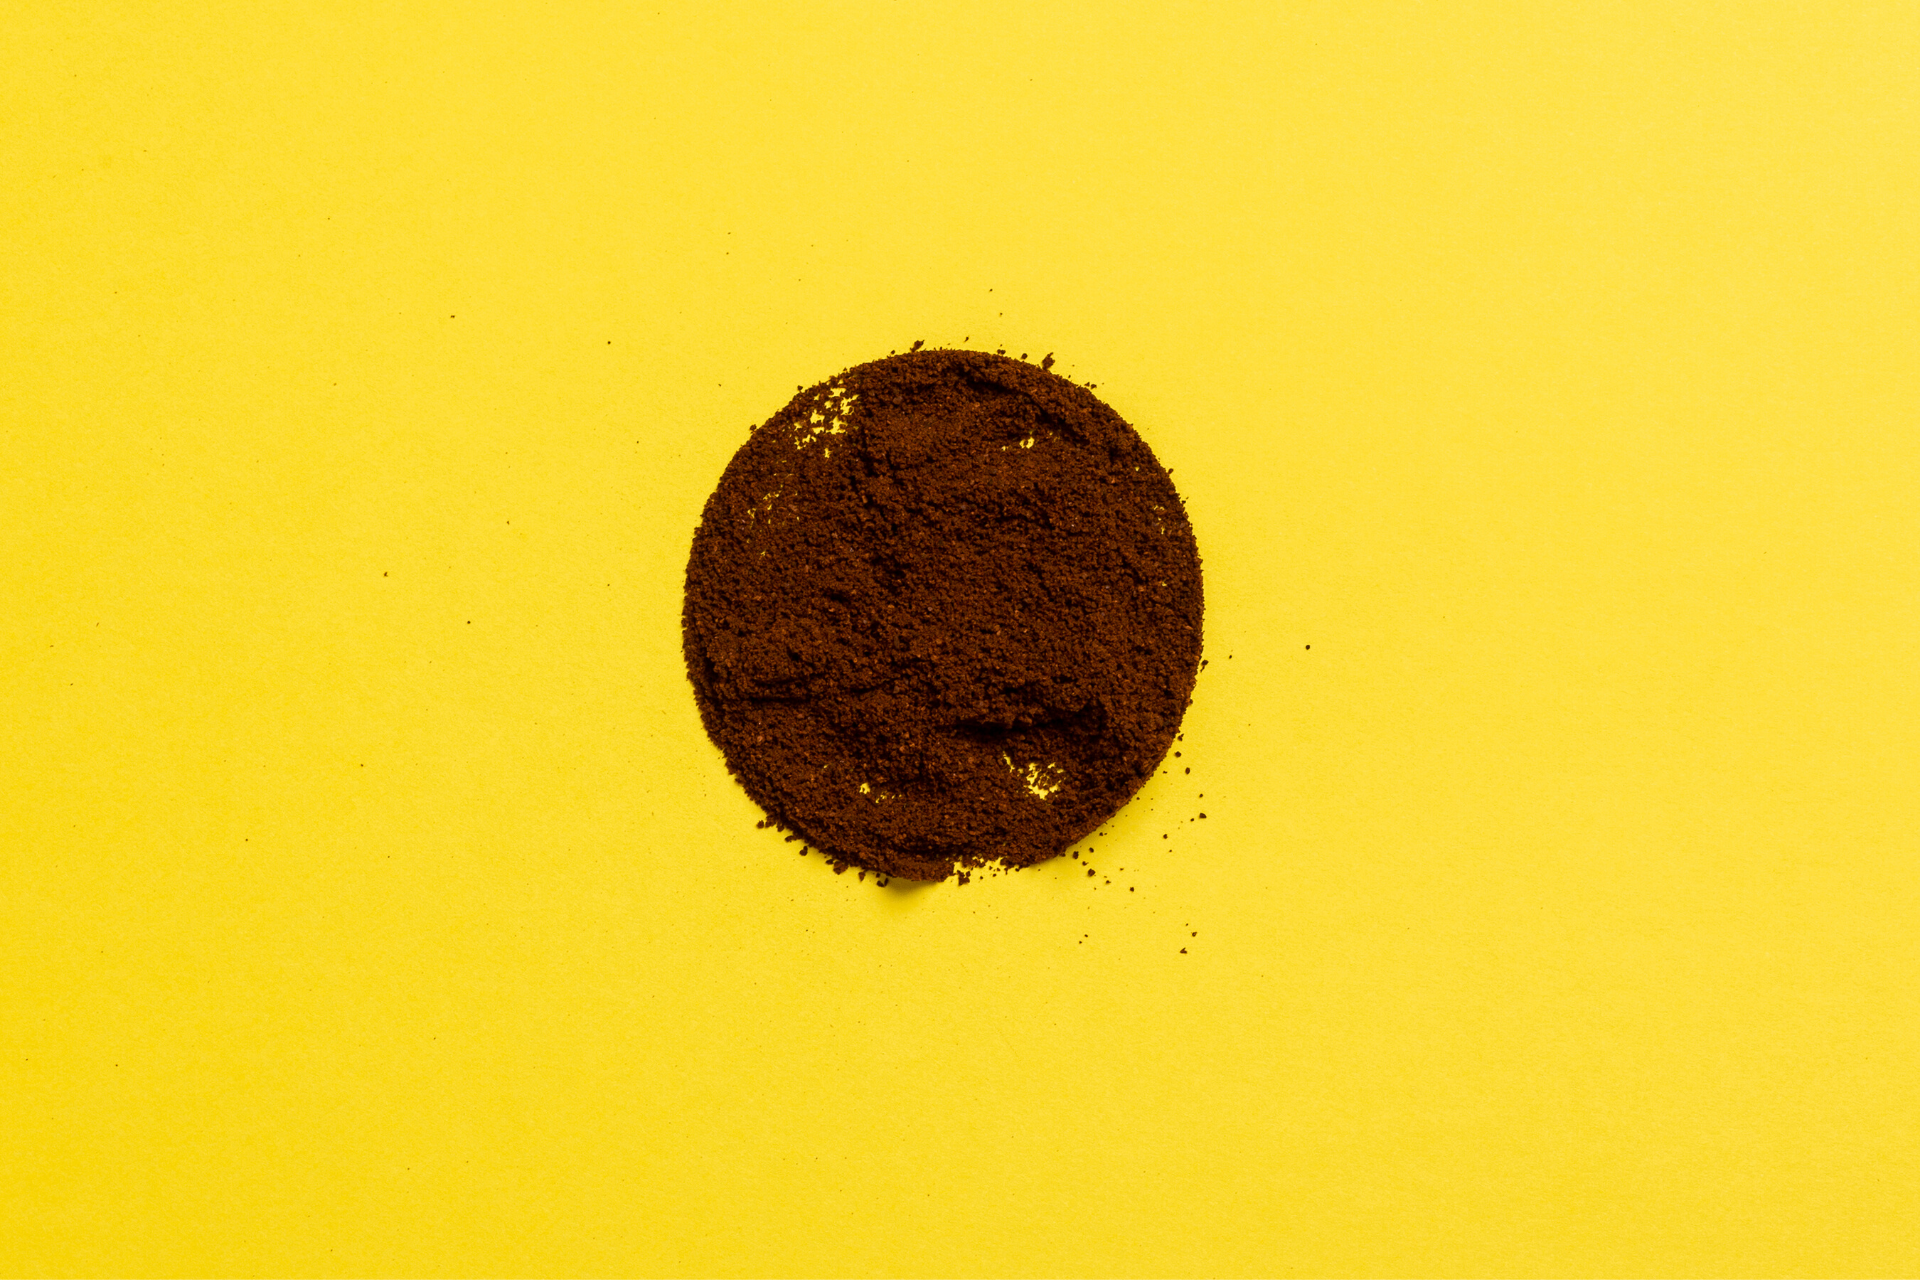 Coffee grounds can also be used to make cakes, biscuits